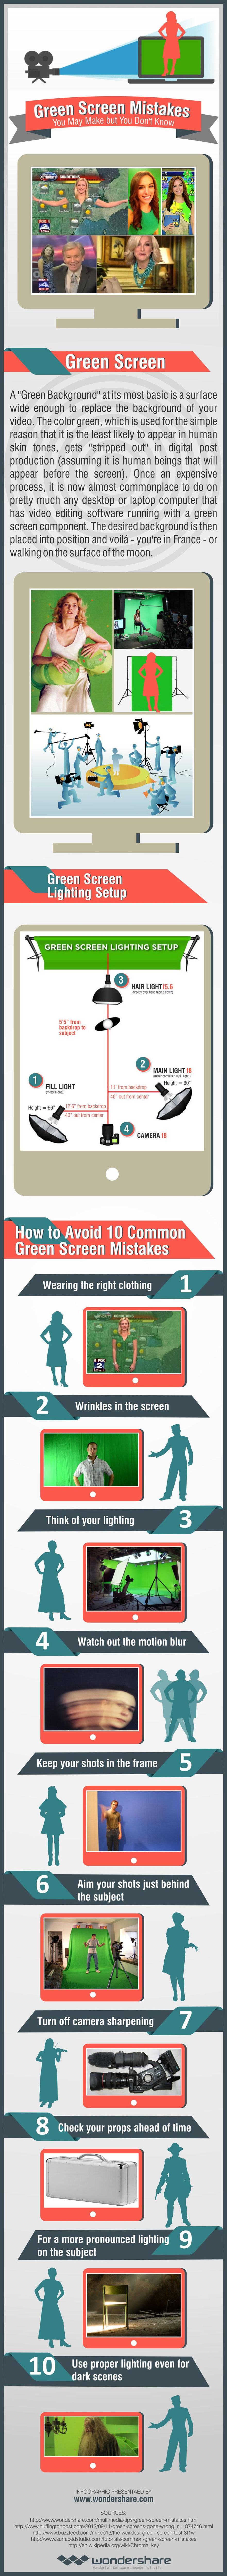 green screen mistakes